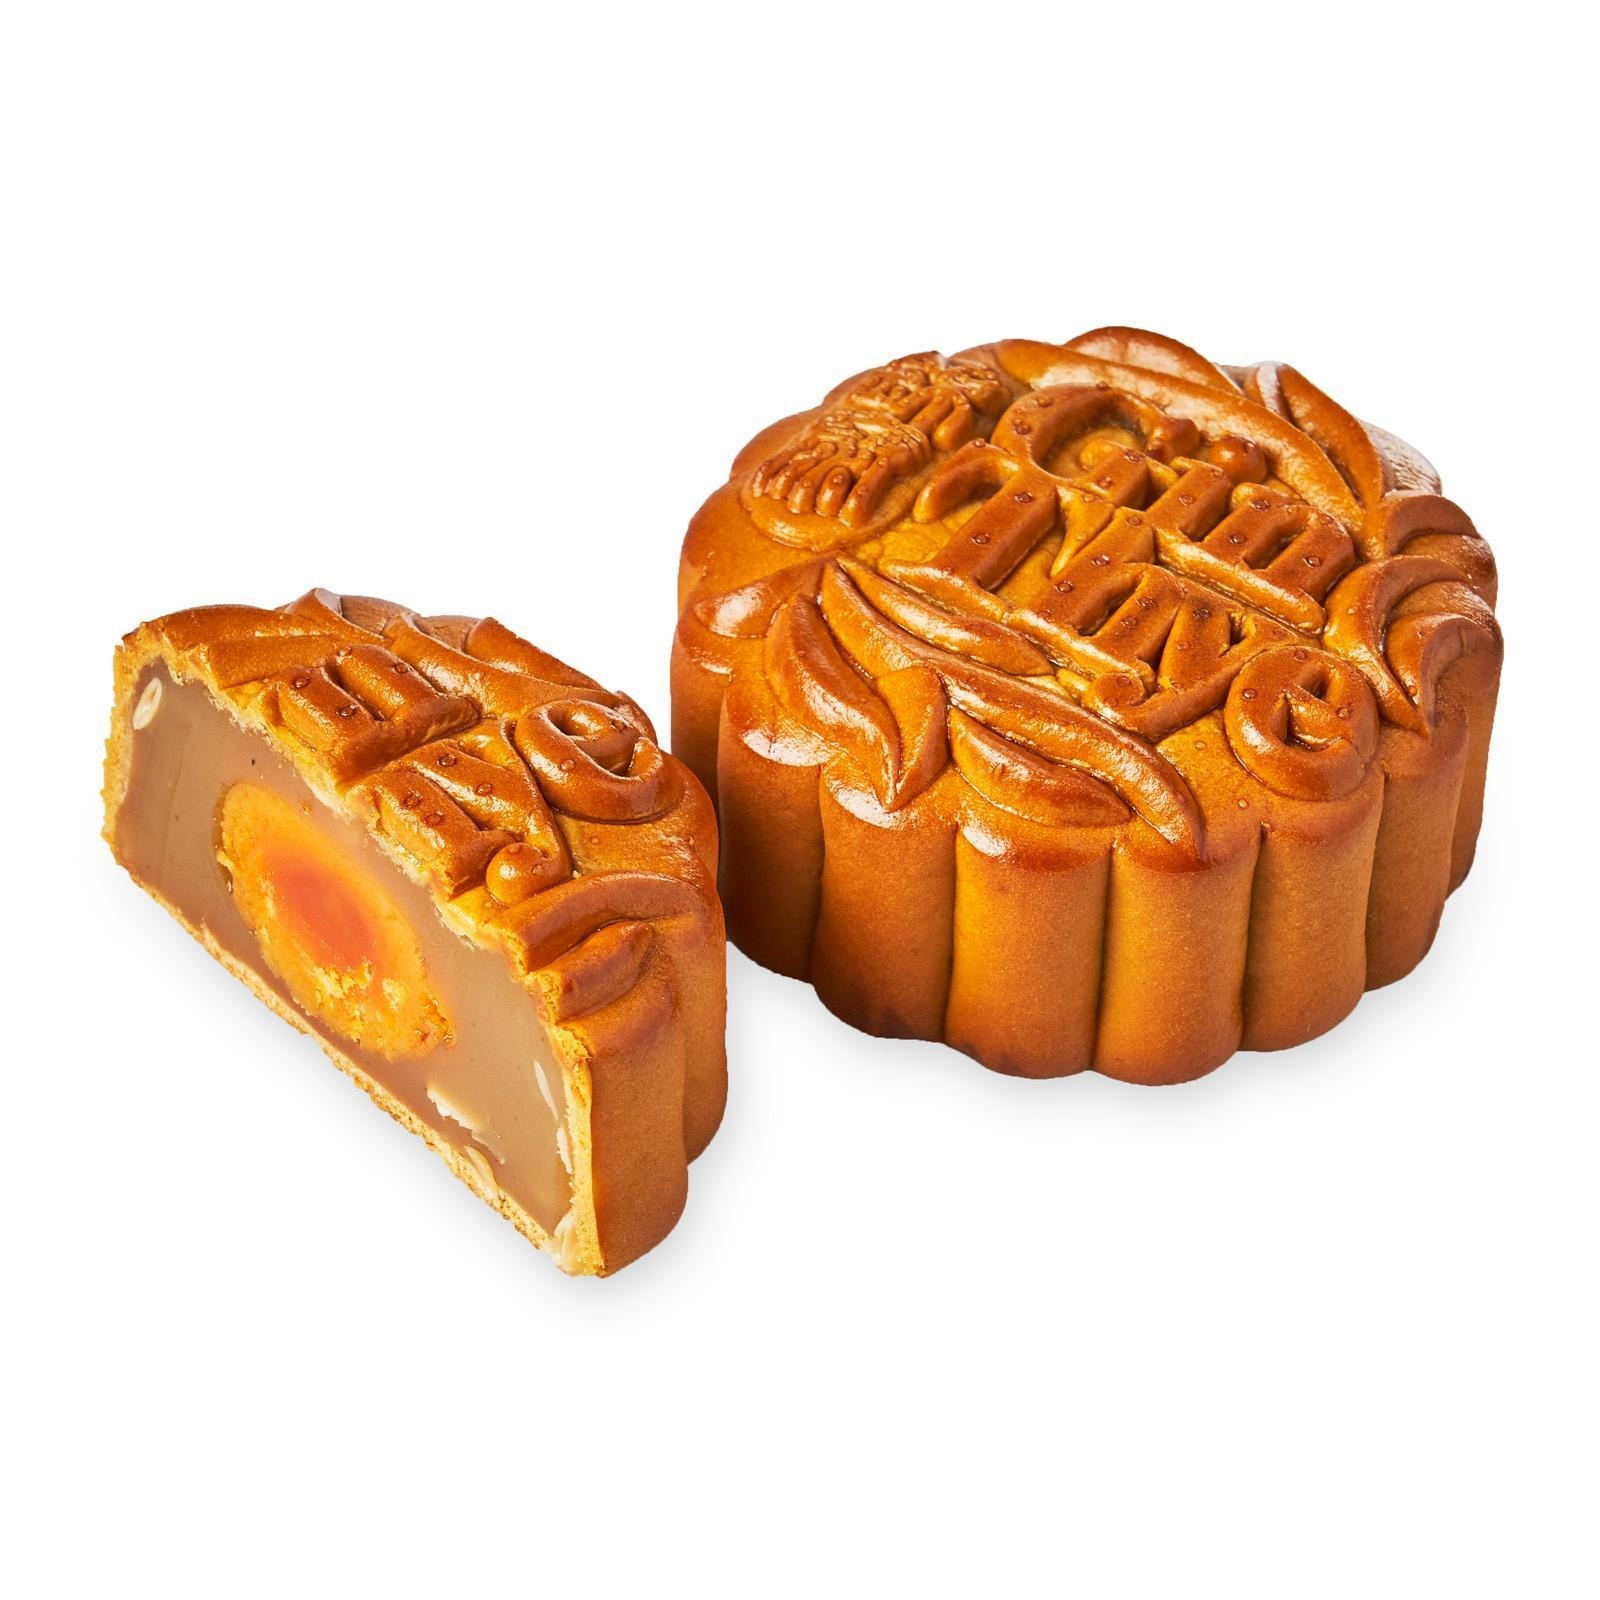 Gin Thye Low Sugar Mooncake - White Lotus Single Yolk